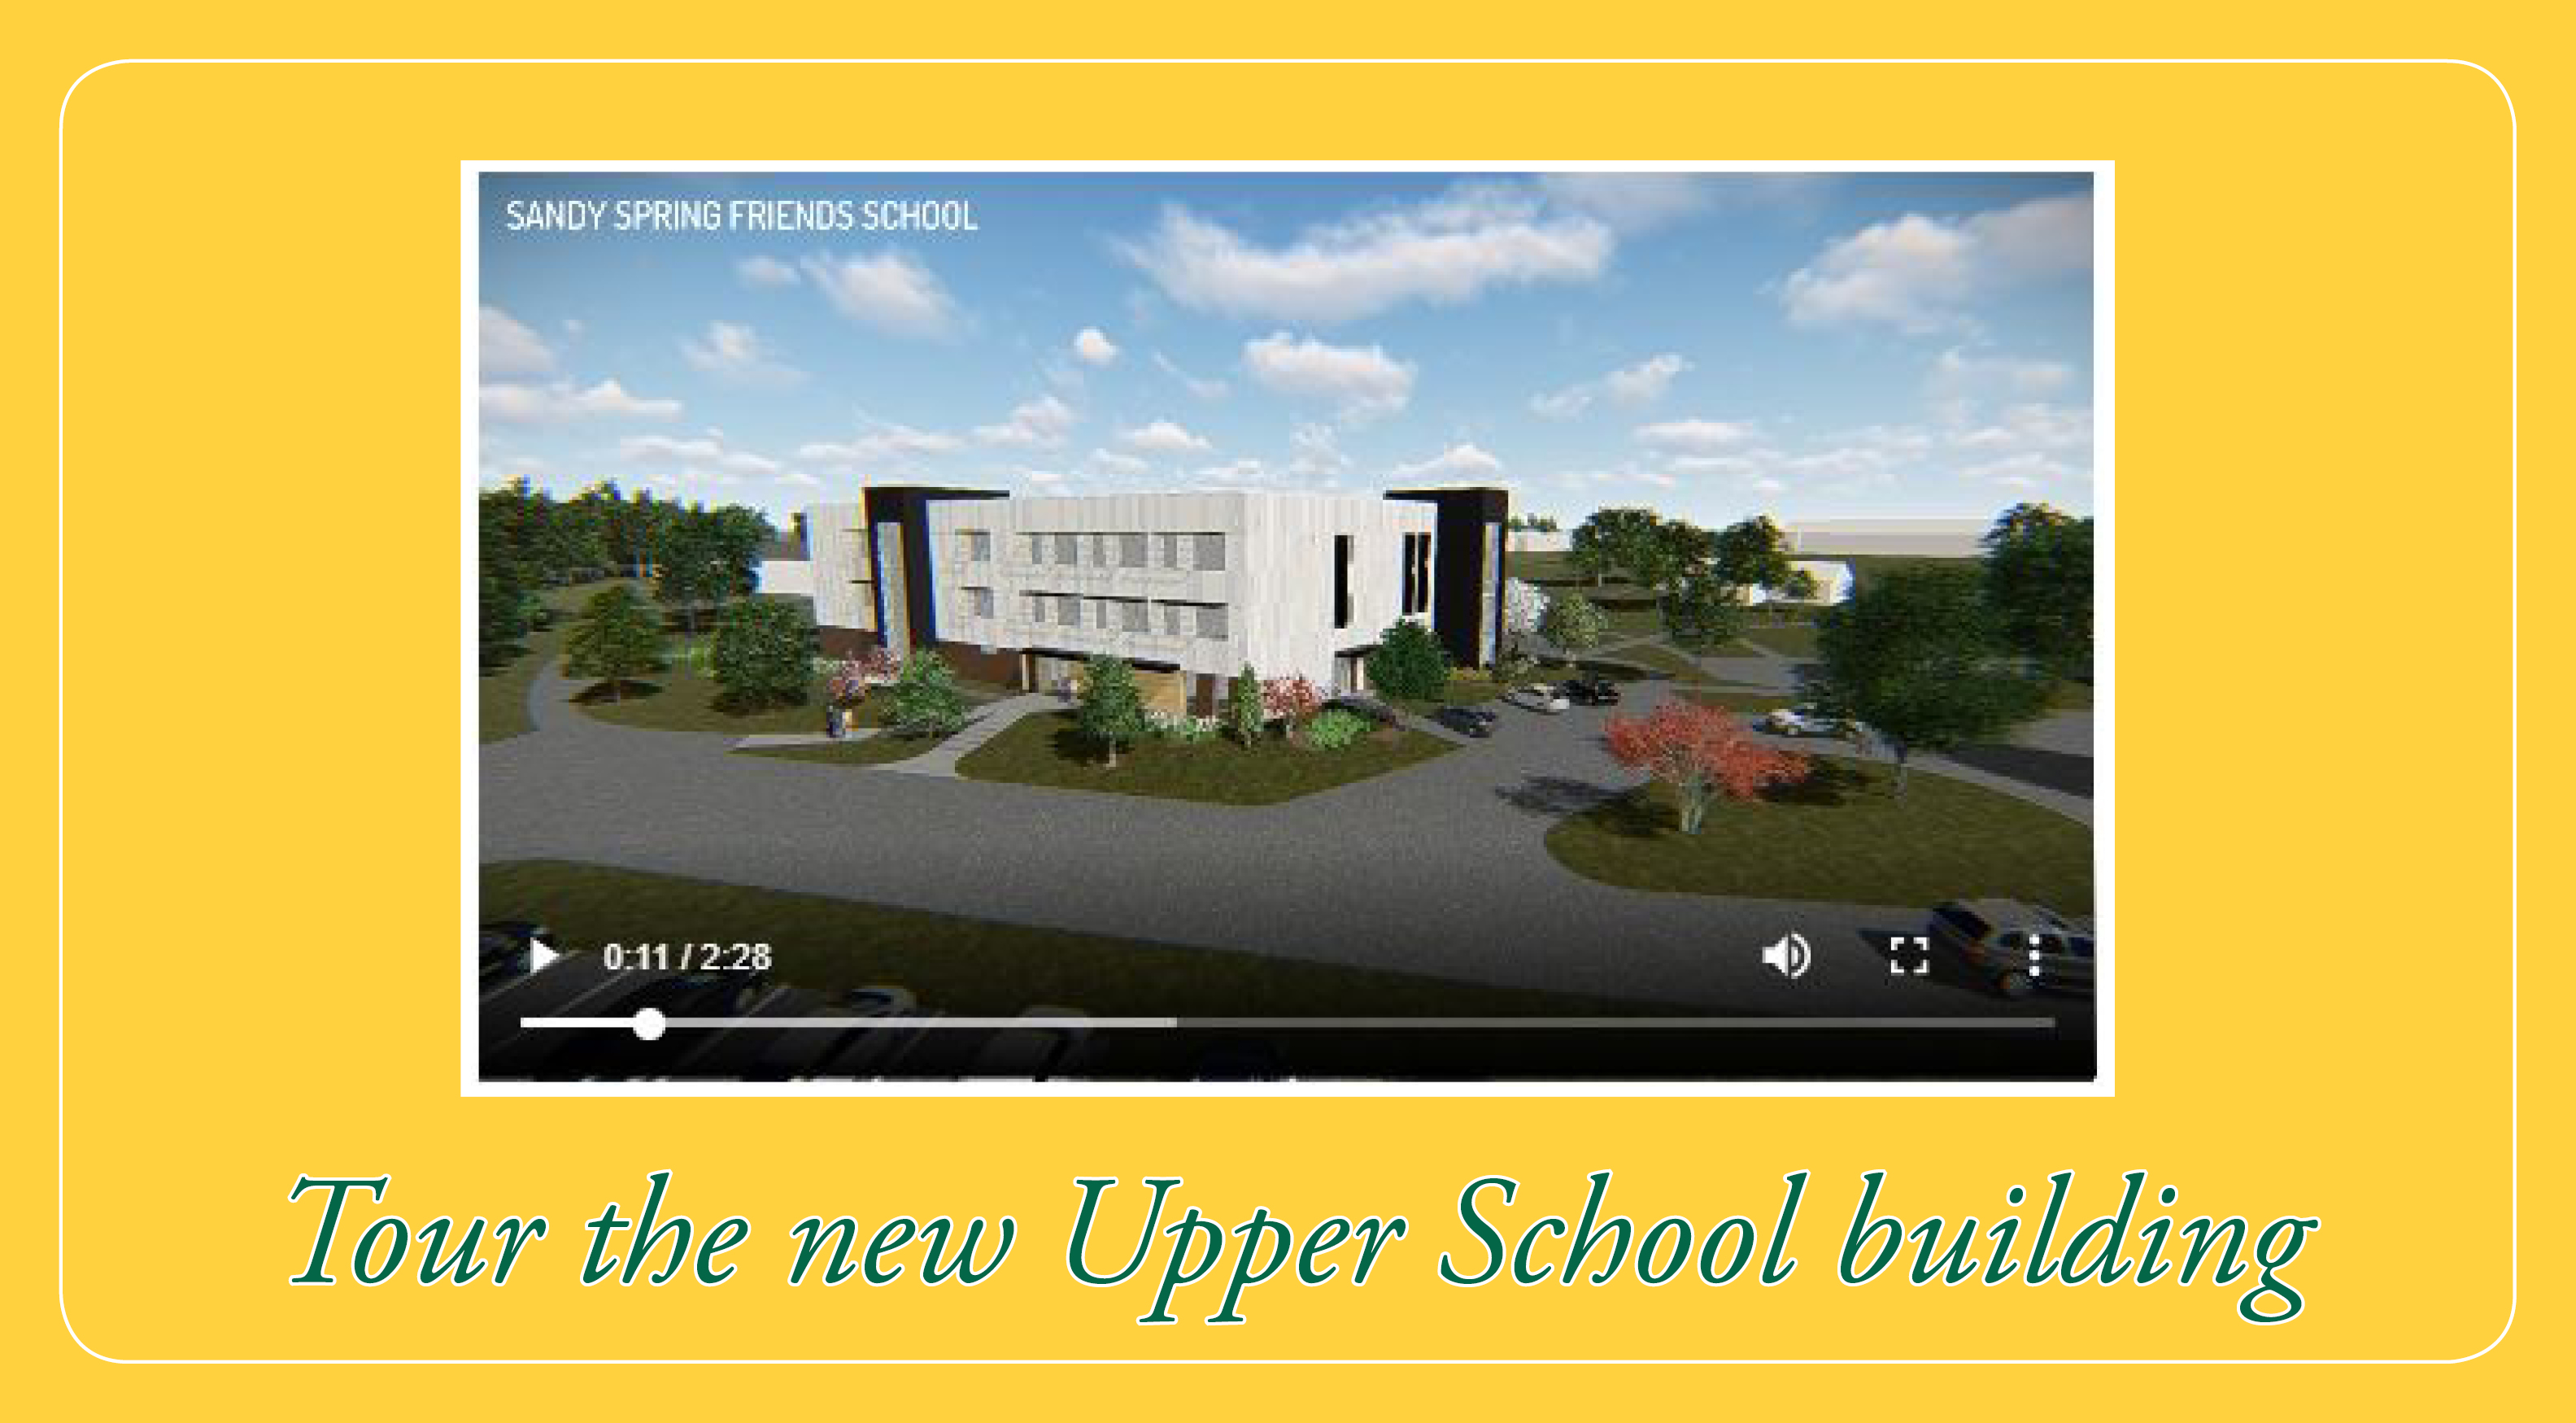 New Upper School Animation